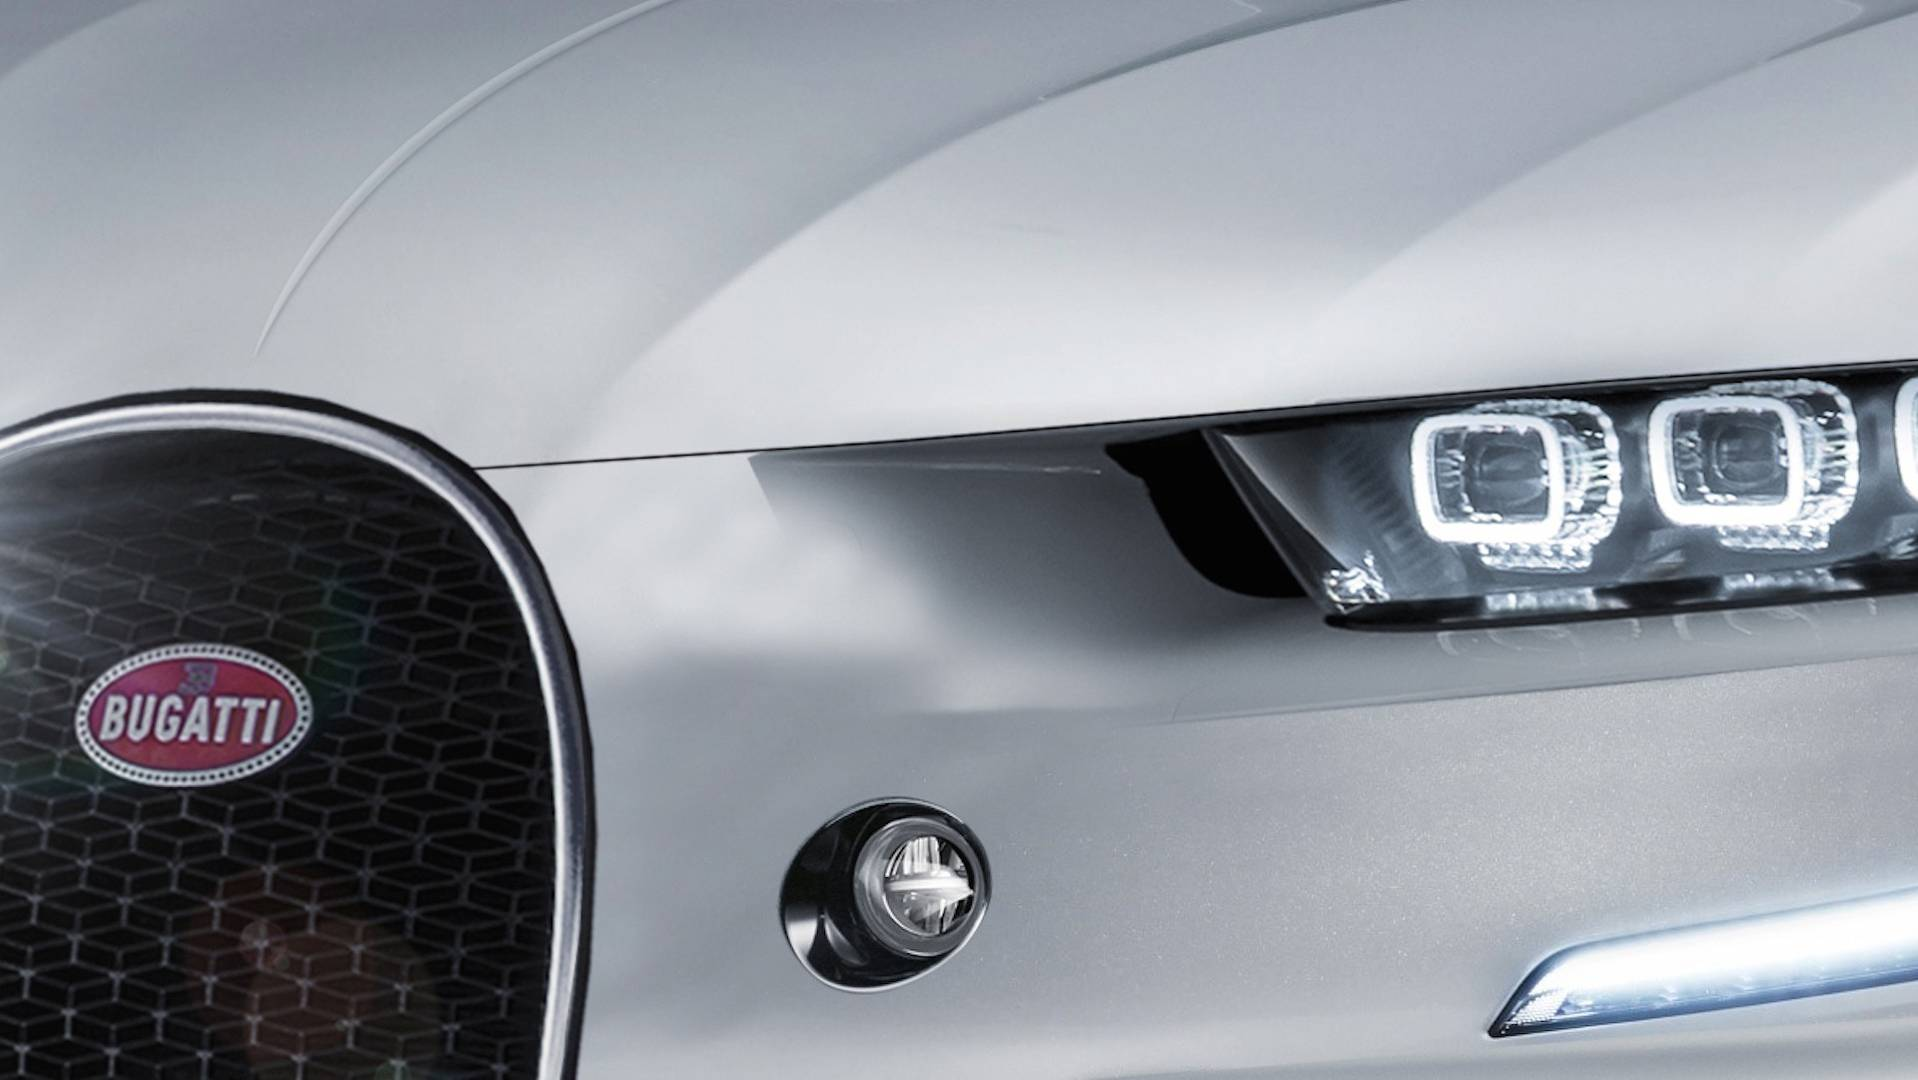 Bugatti President Says An Suv Is Not Happening Explains Why